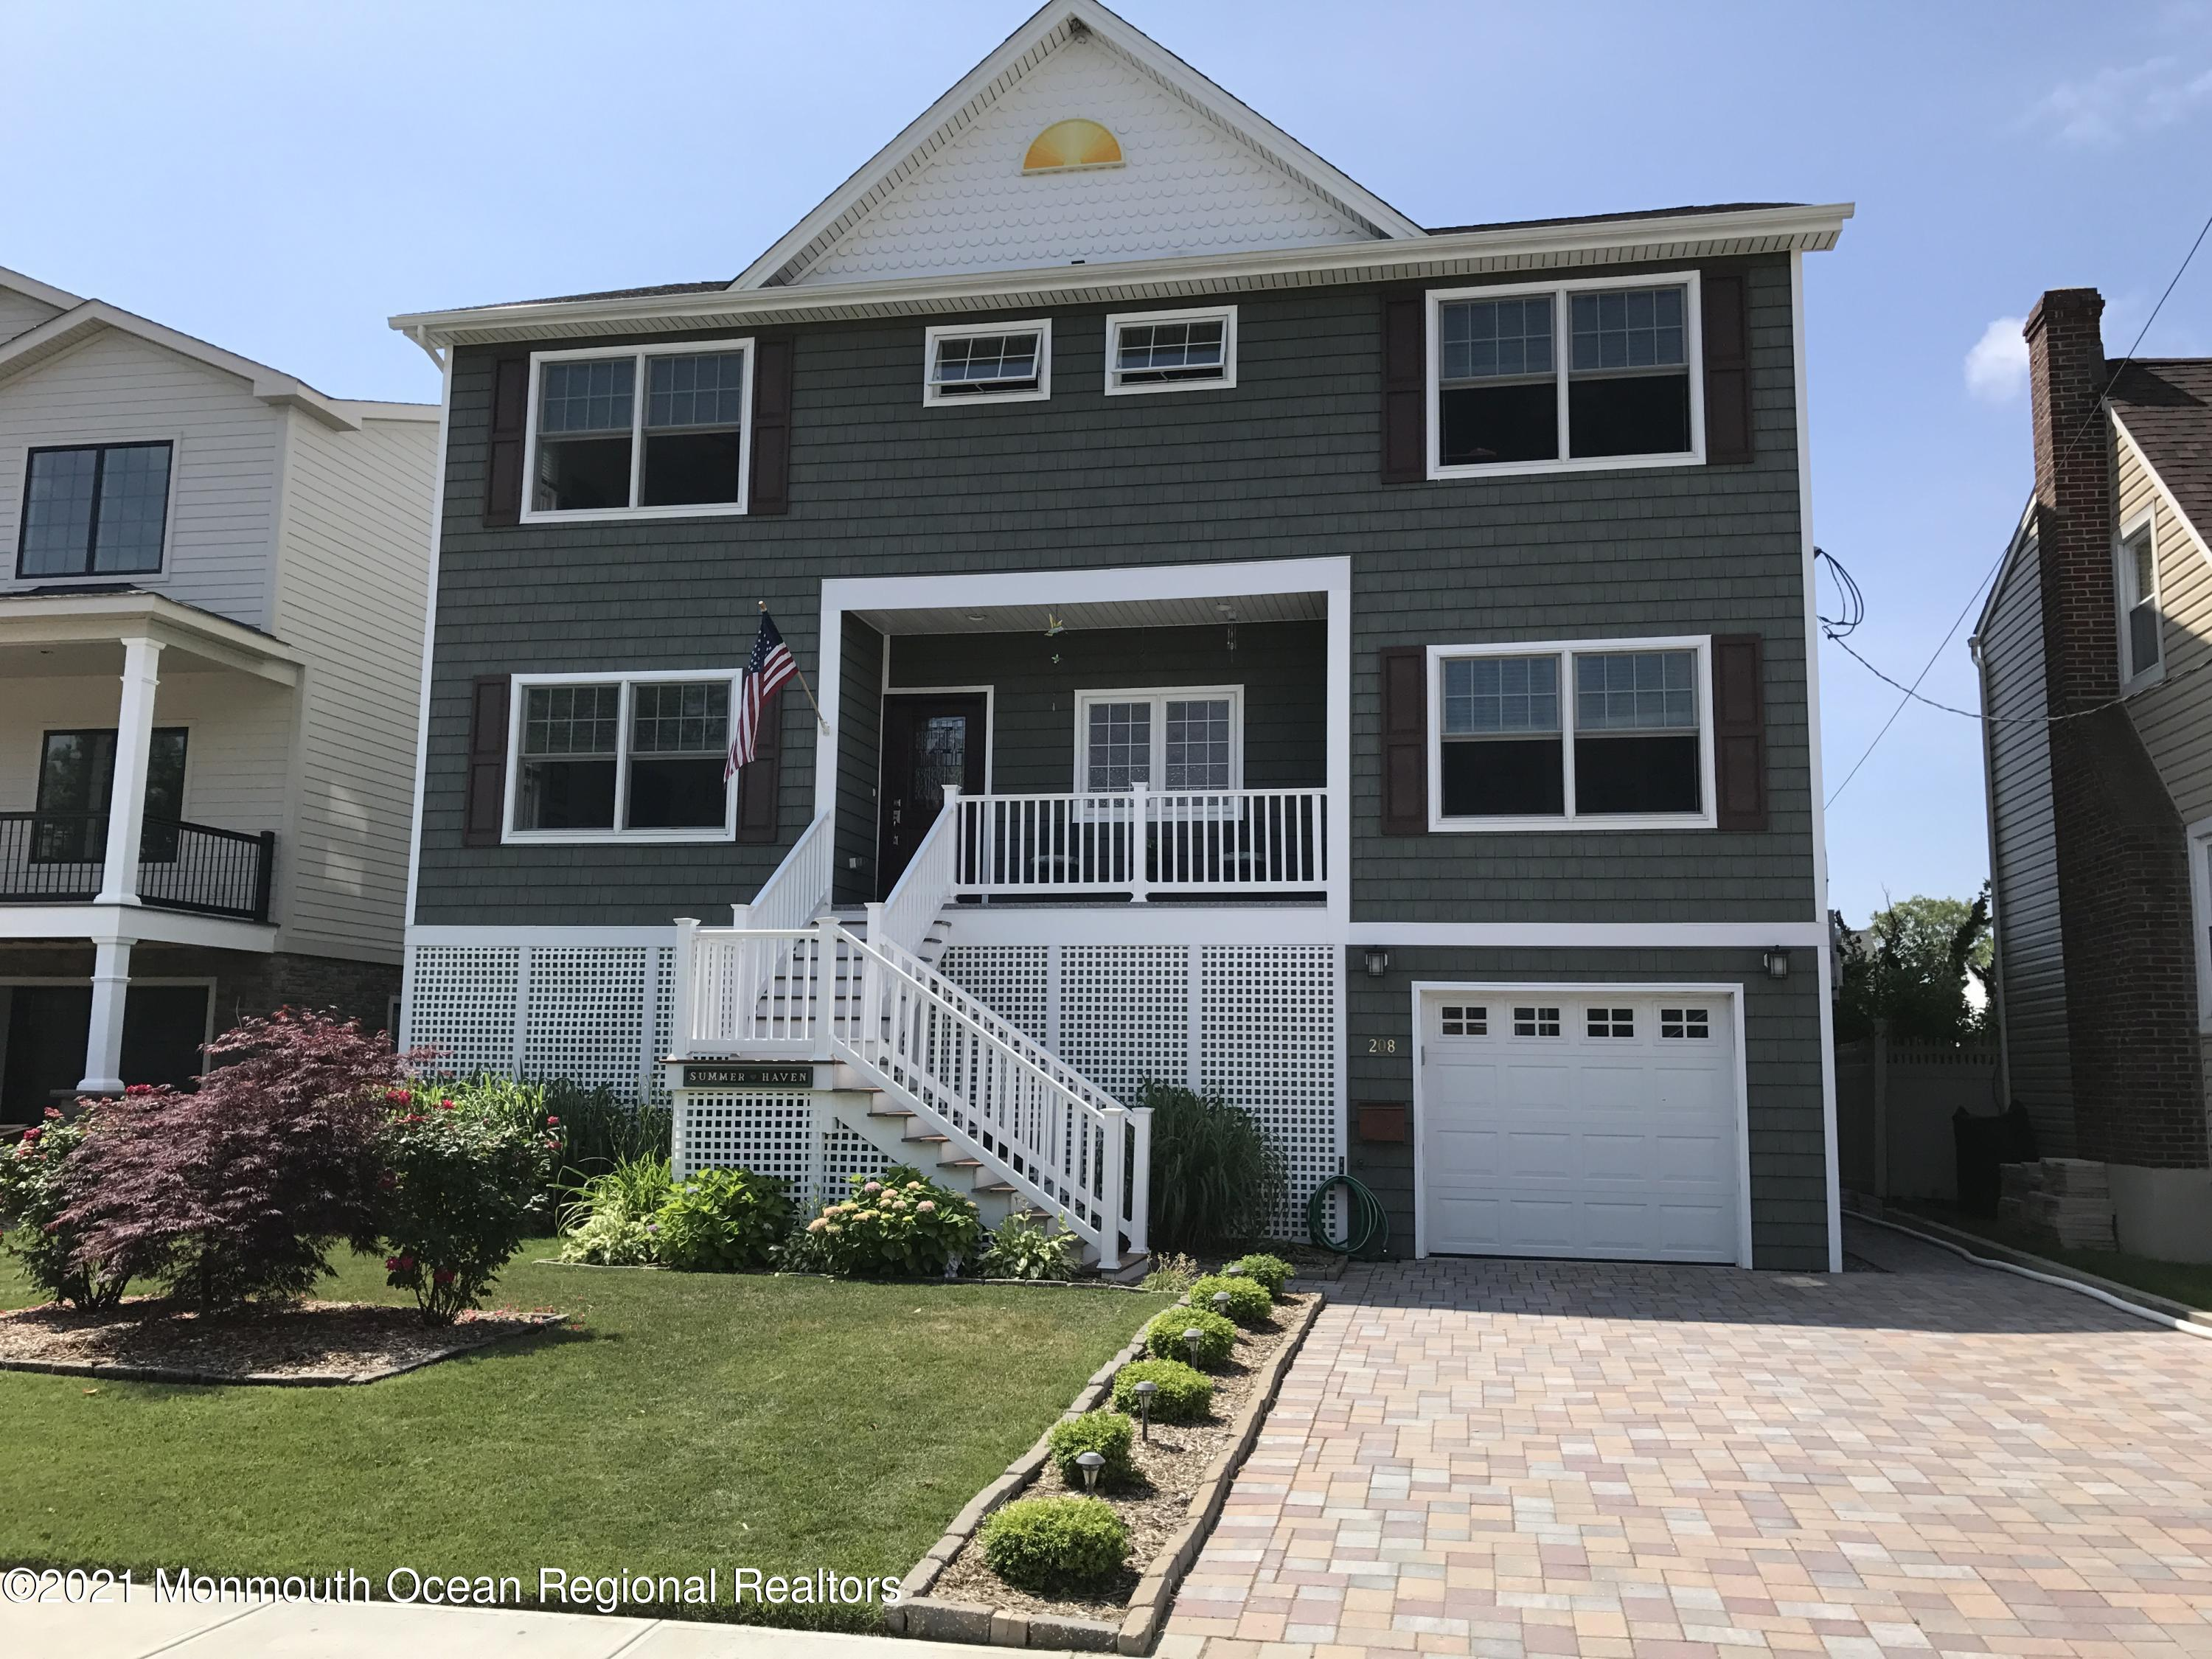 208 Central Avenue, Point Pleasant Beach, New Jersey 08742, 5 Bedrooms Bedrooms, ,3 BathroomsBathrooms,Single Family,For Sale,208 Central Avenue,3,22107039